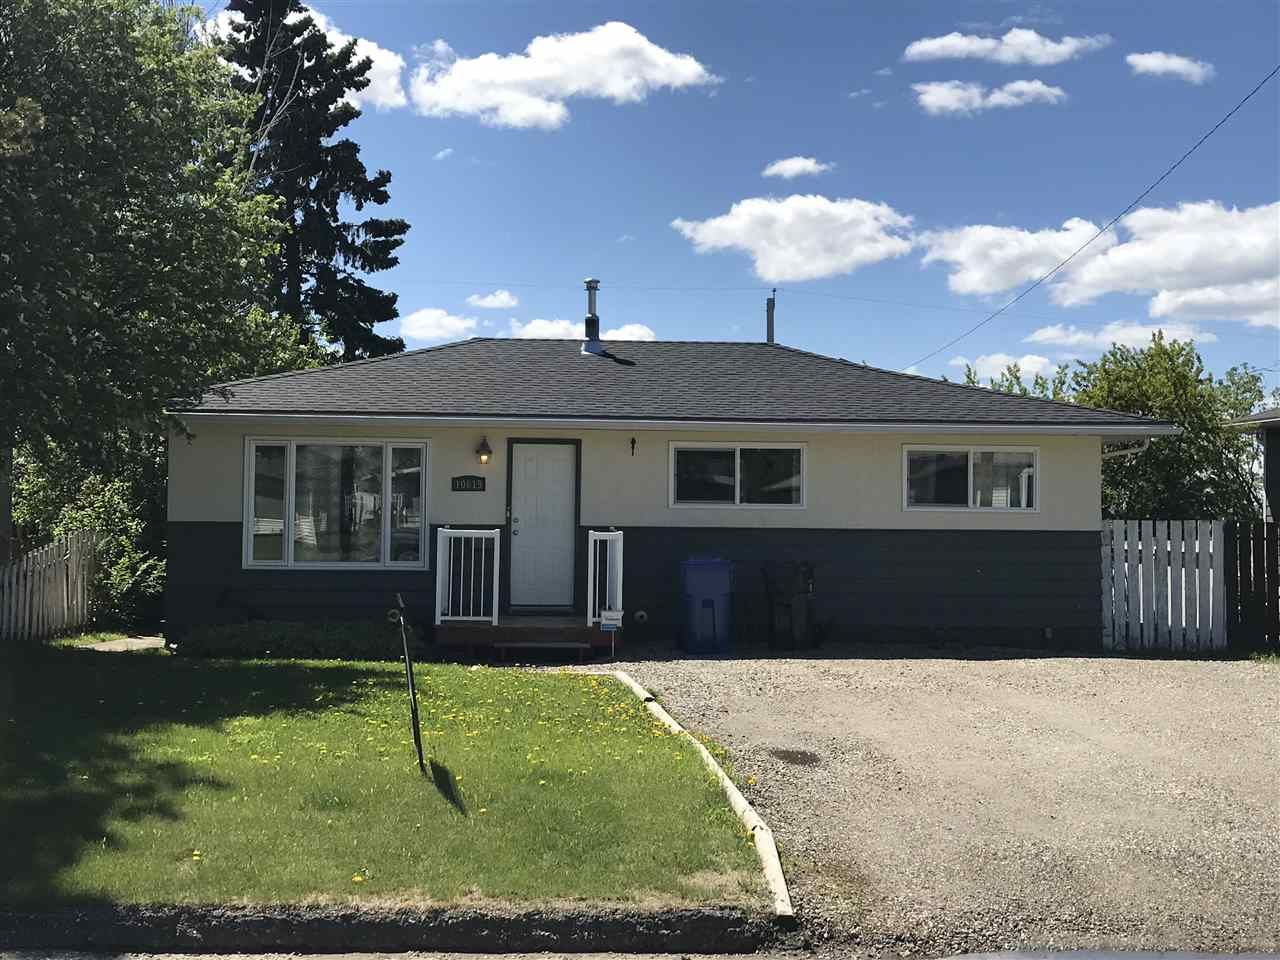 """Main Photo: 10619 103 Avenue in Fort St. John: Fort St. John - City NW House for sale in """"FINCH"""" (Fort St. John (Zone 60))  : MLS®# R2417918"""